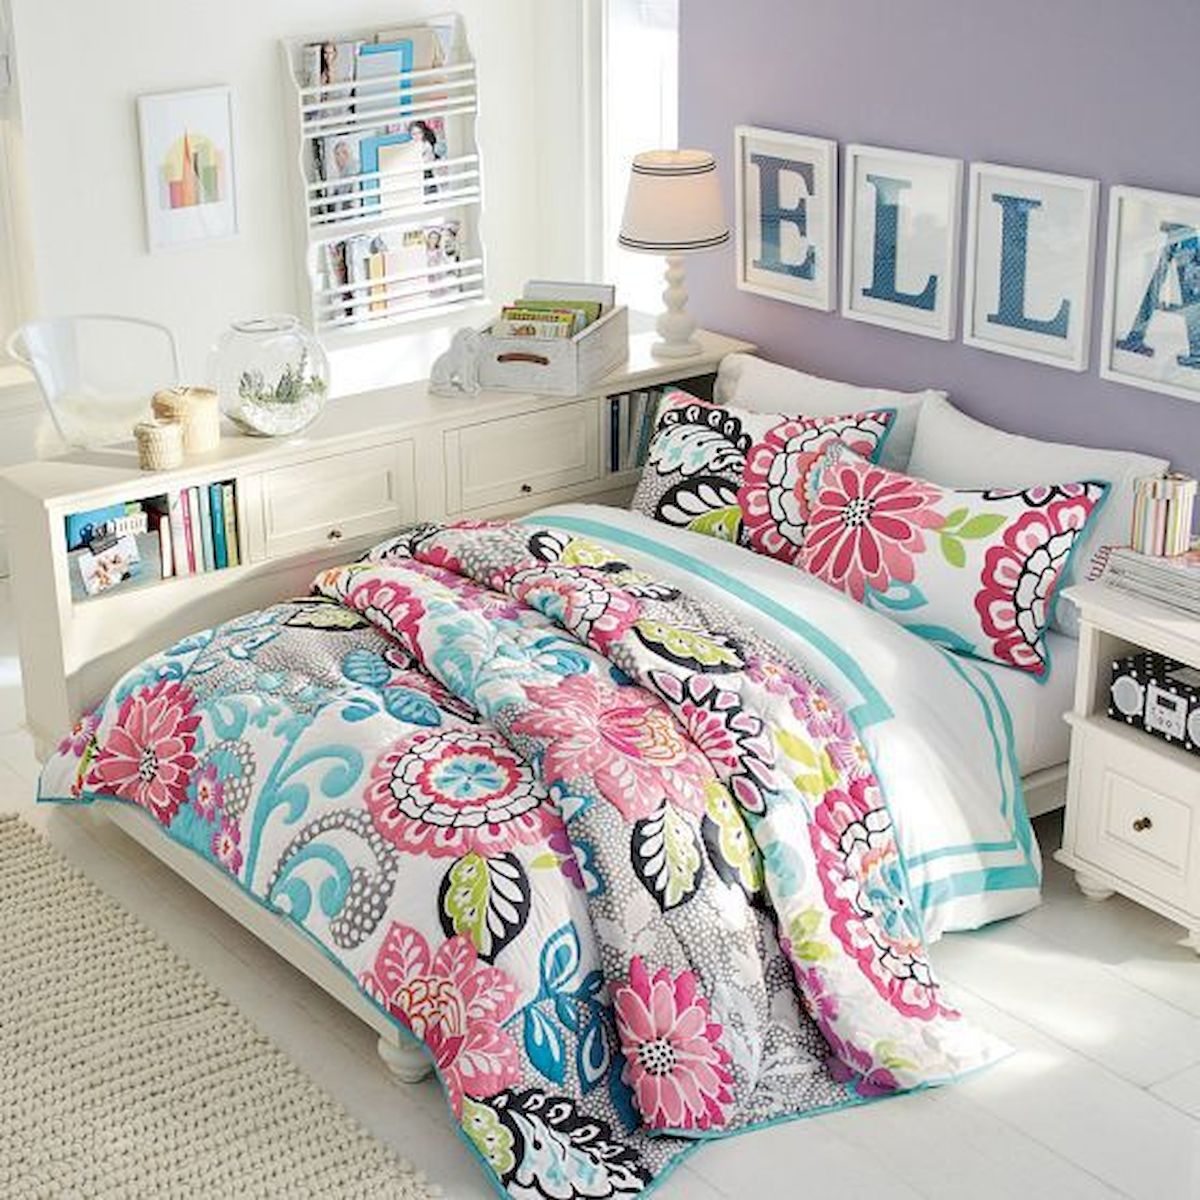 60 Cute DIY Bedroom Design and Decor Ideas for Kids (55)